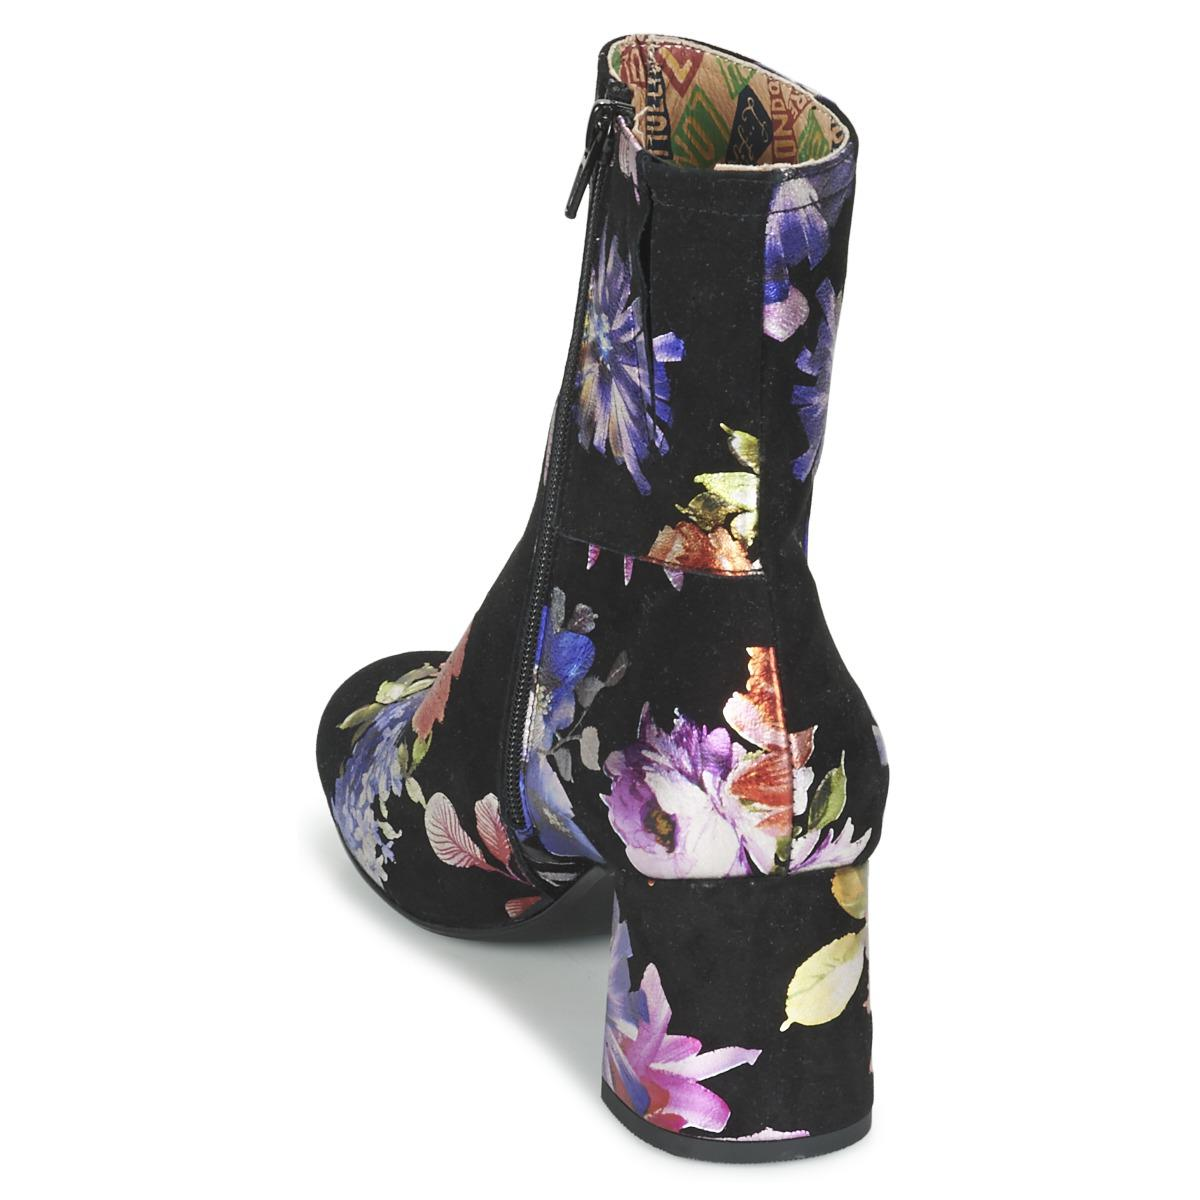 Miss L Fire Leather Jean Women's Low Ankle Boots In Multicolour in Blue